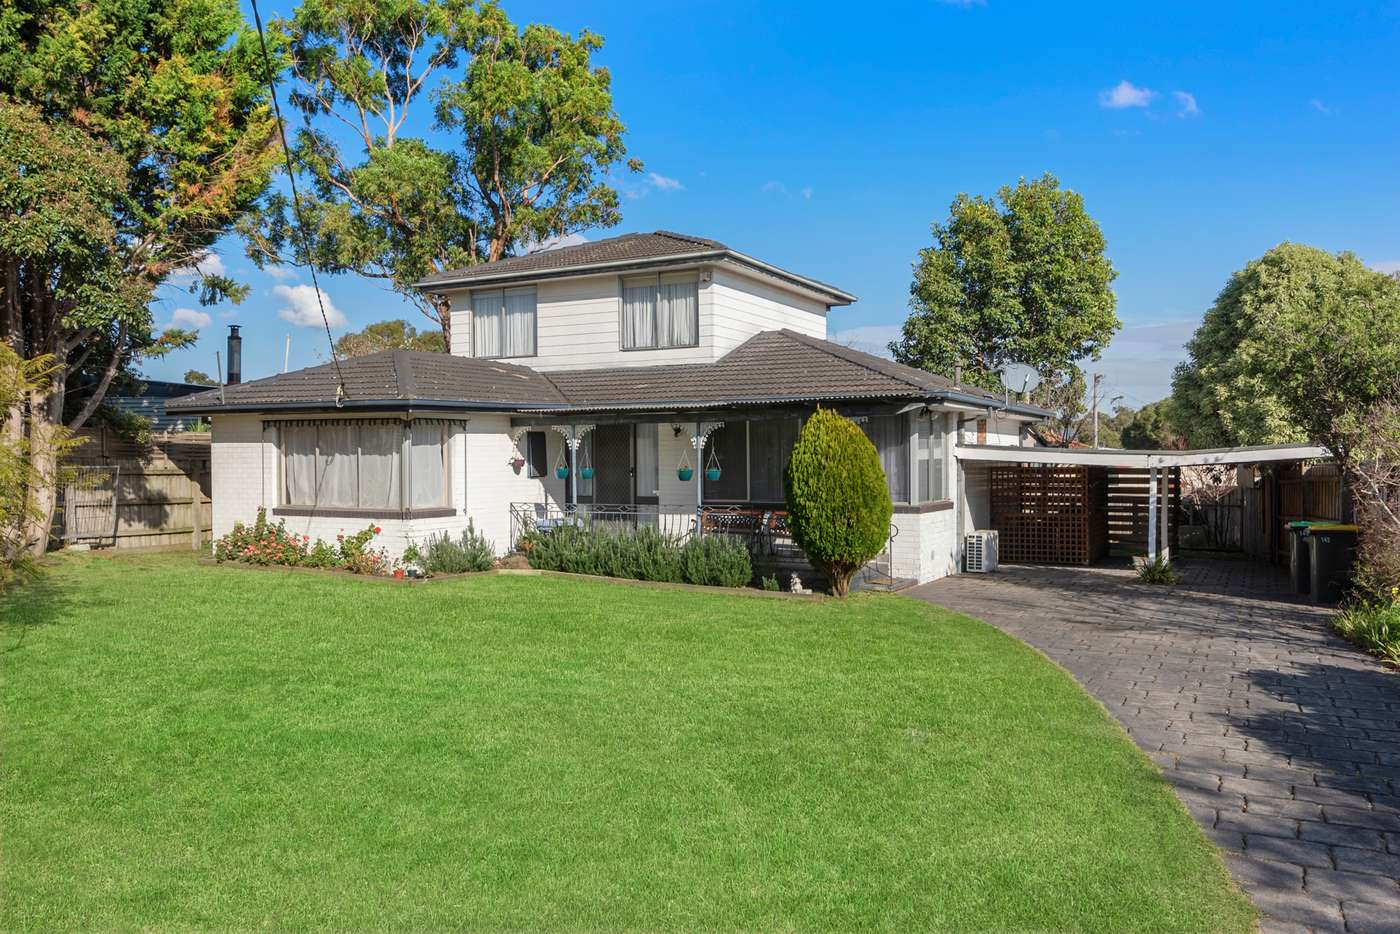 Main view of Homely house listing, 142 Karingal Drive, Frankston VIC 3199